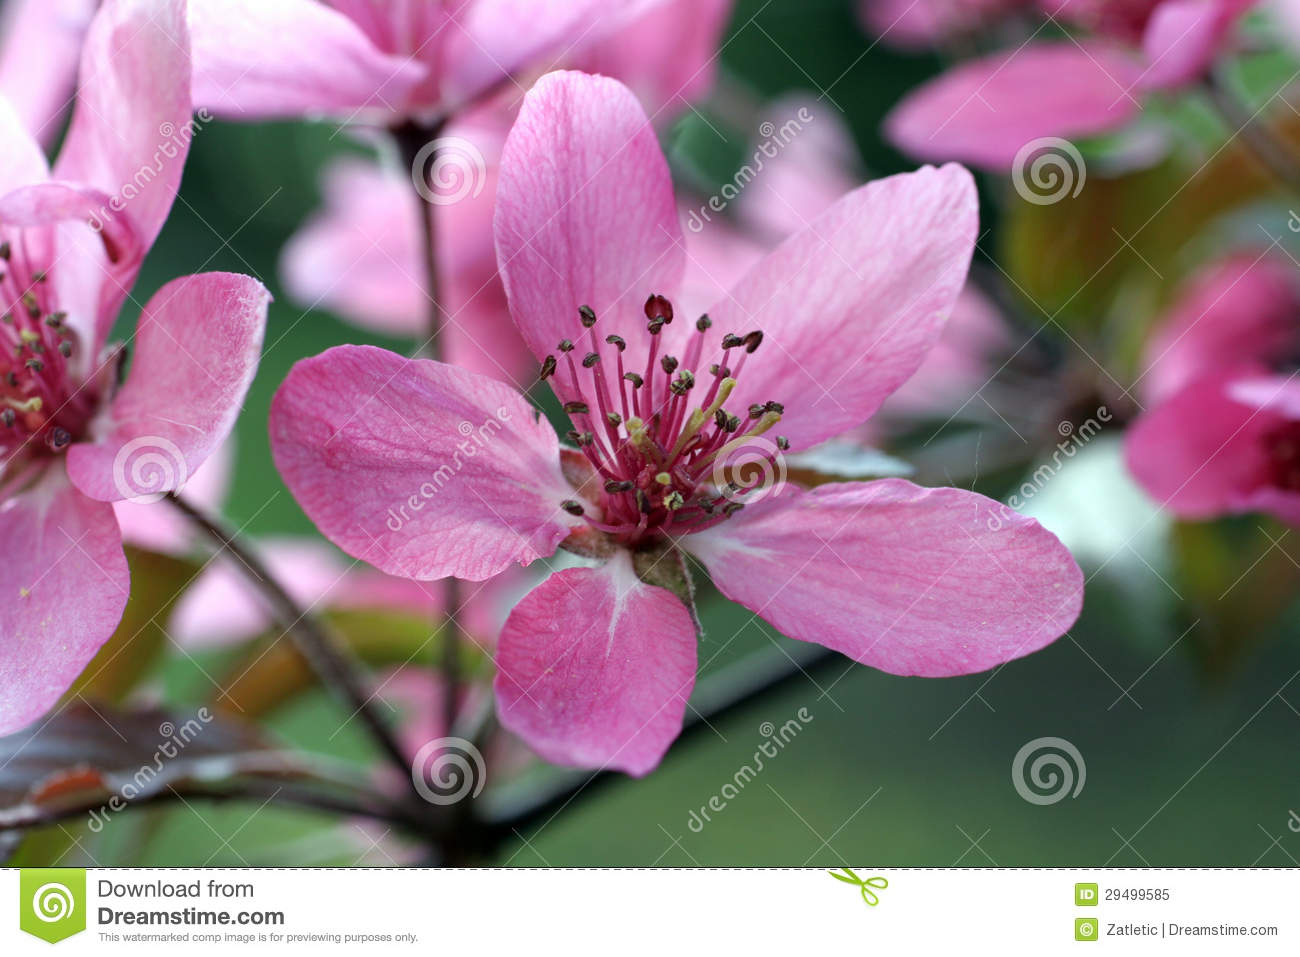 Fruit Flowers Royalty Free Stock Image